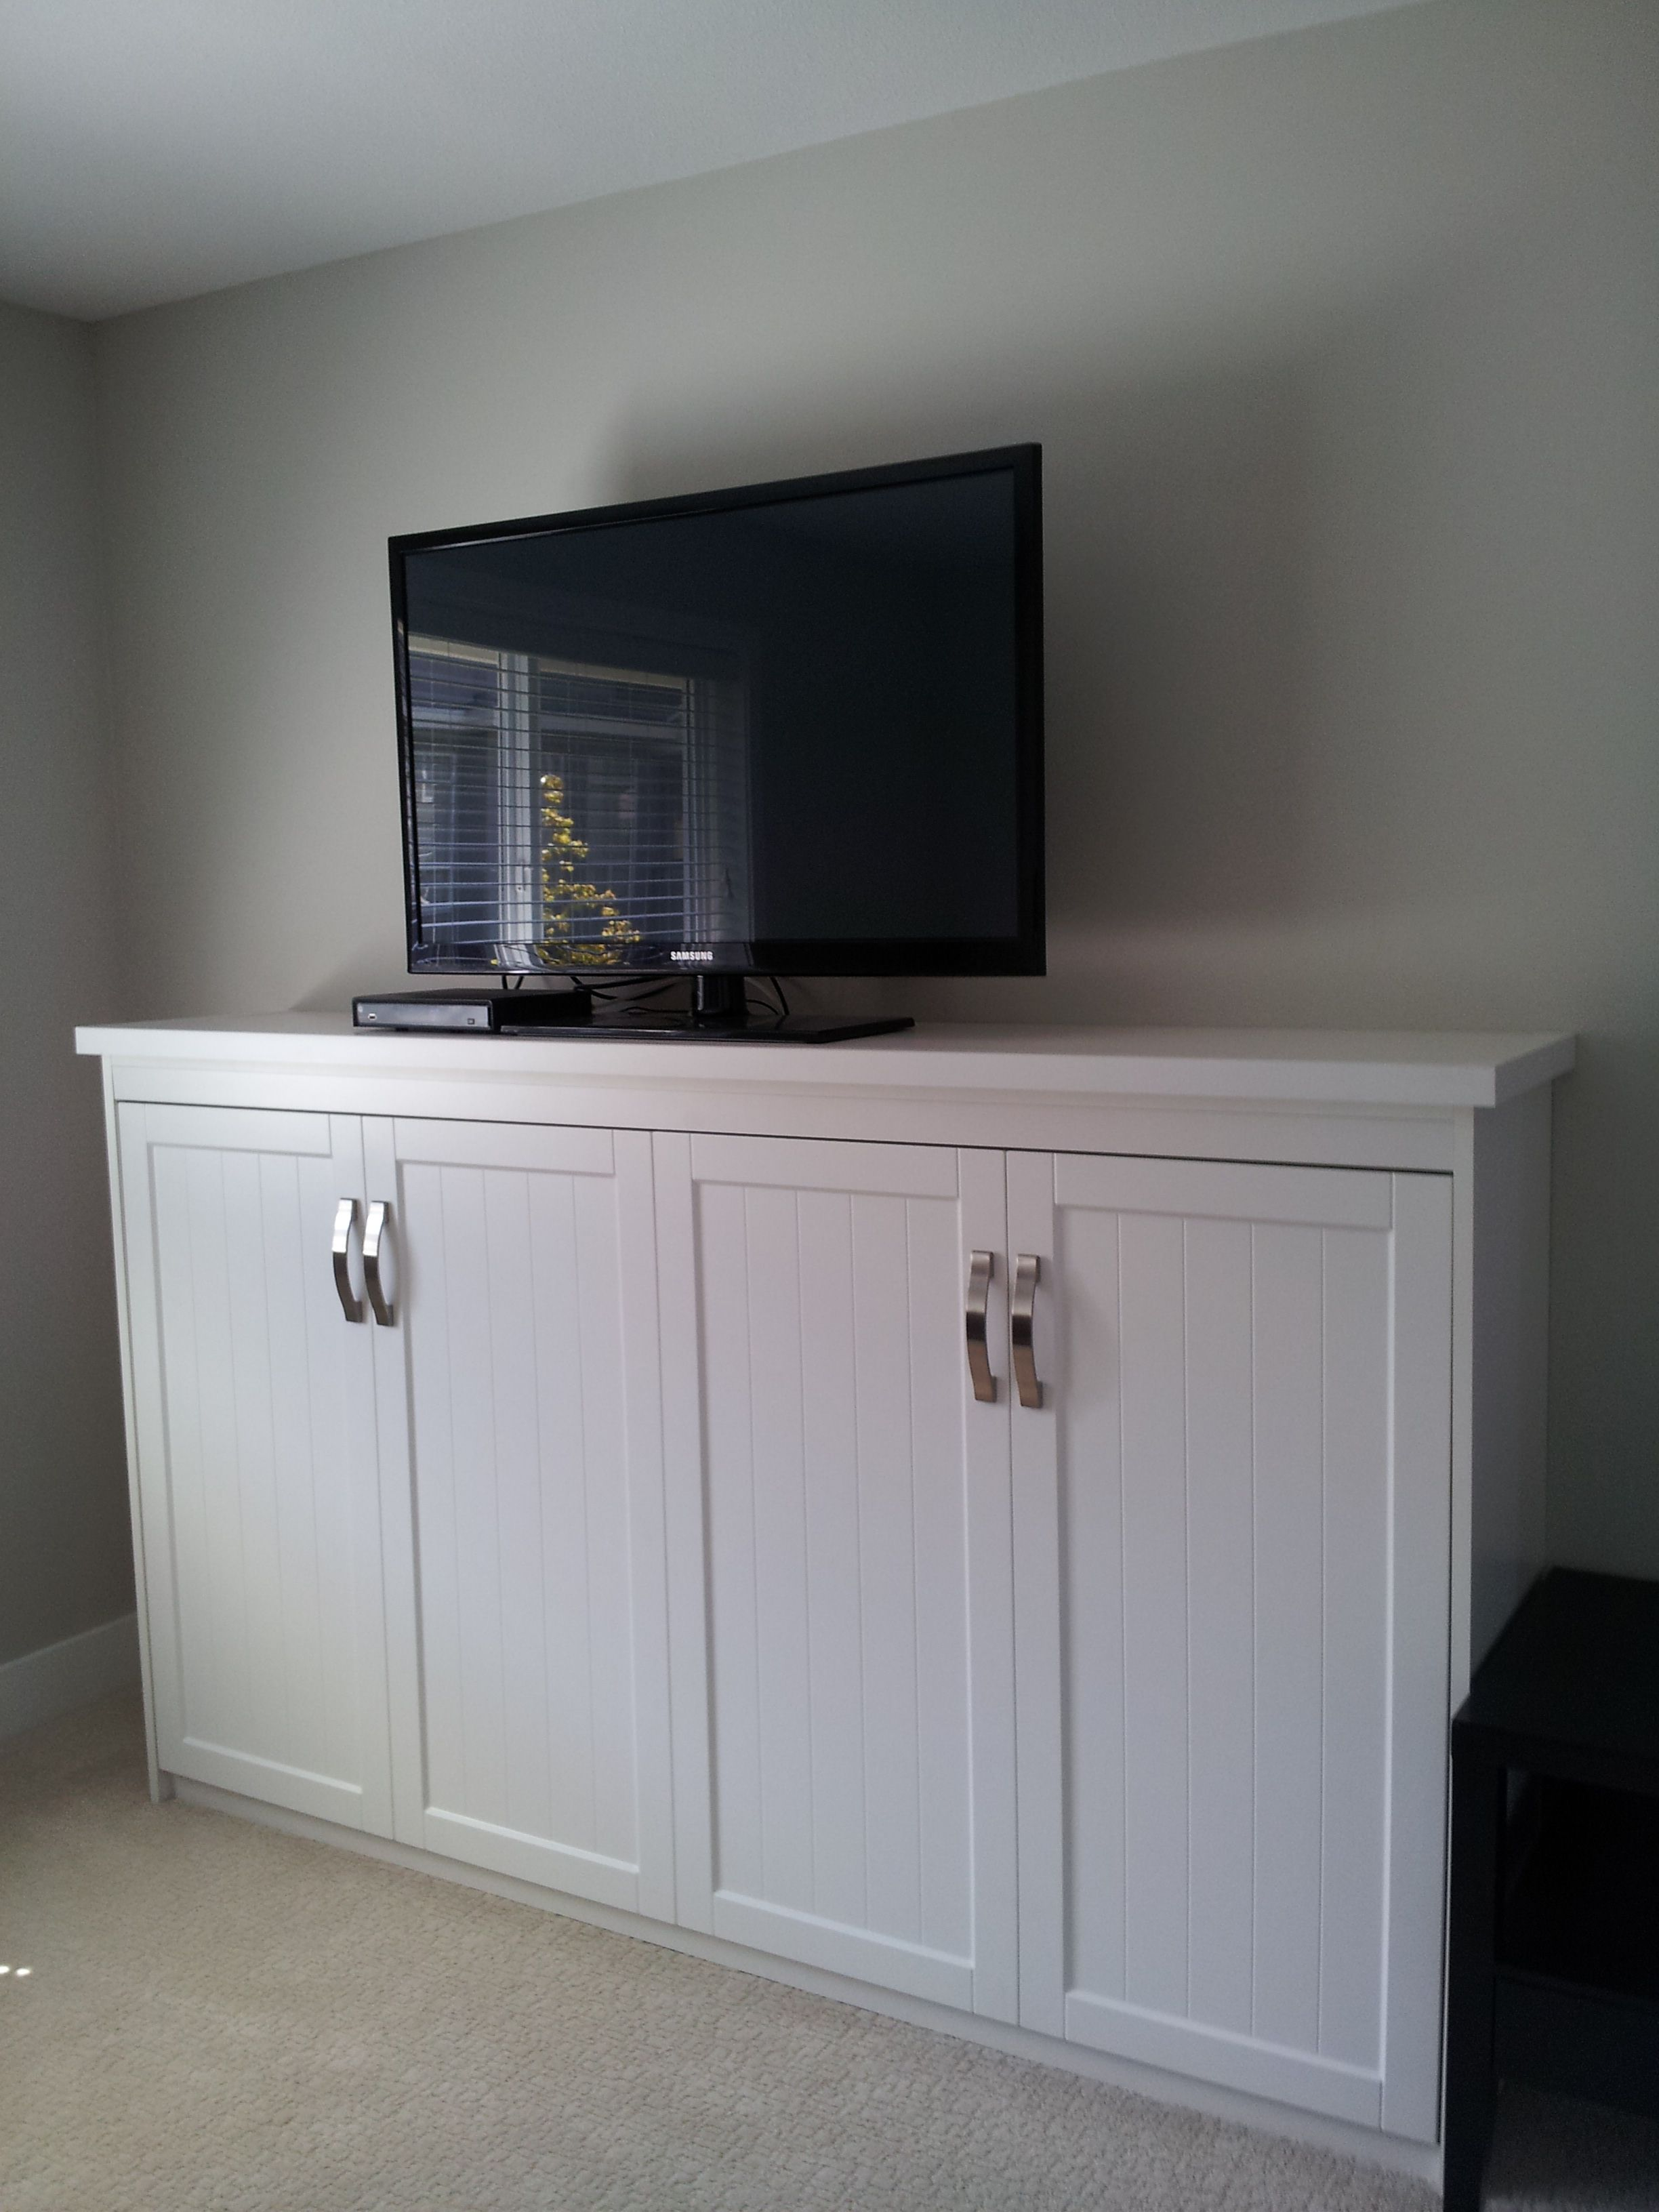 Multi purpose any room in your home with a murphy bed that doubles